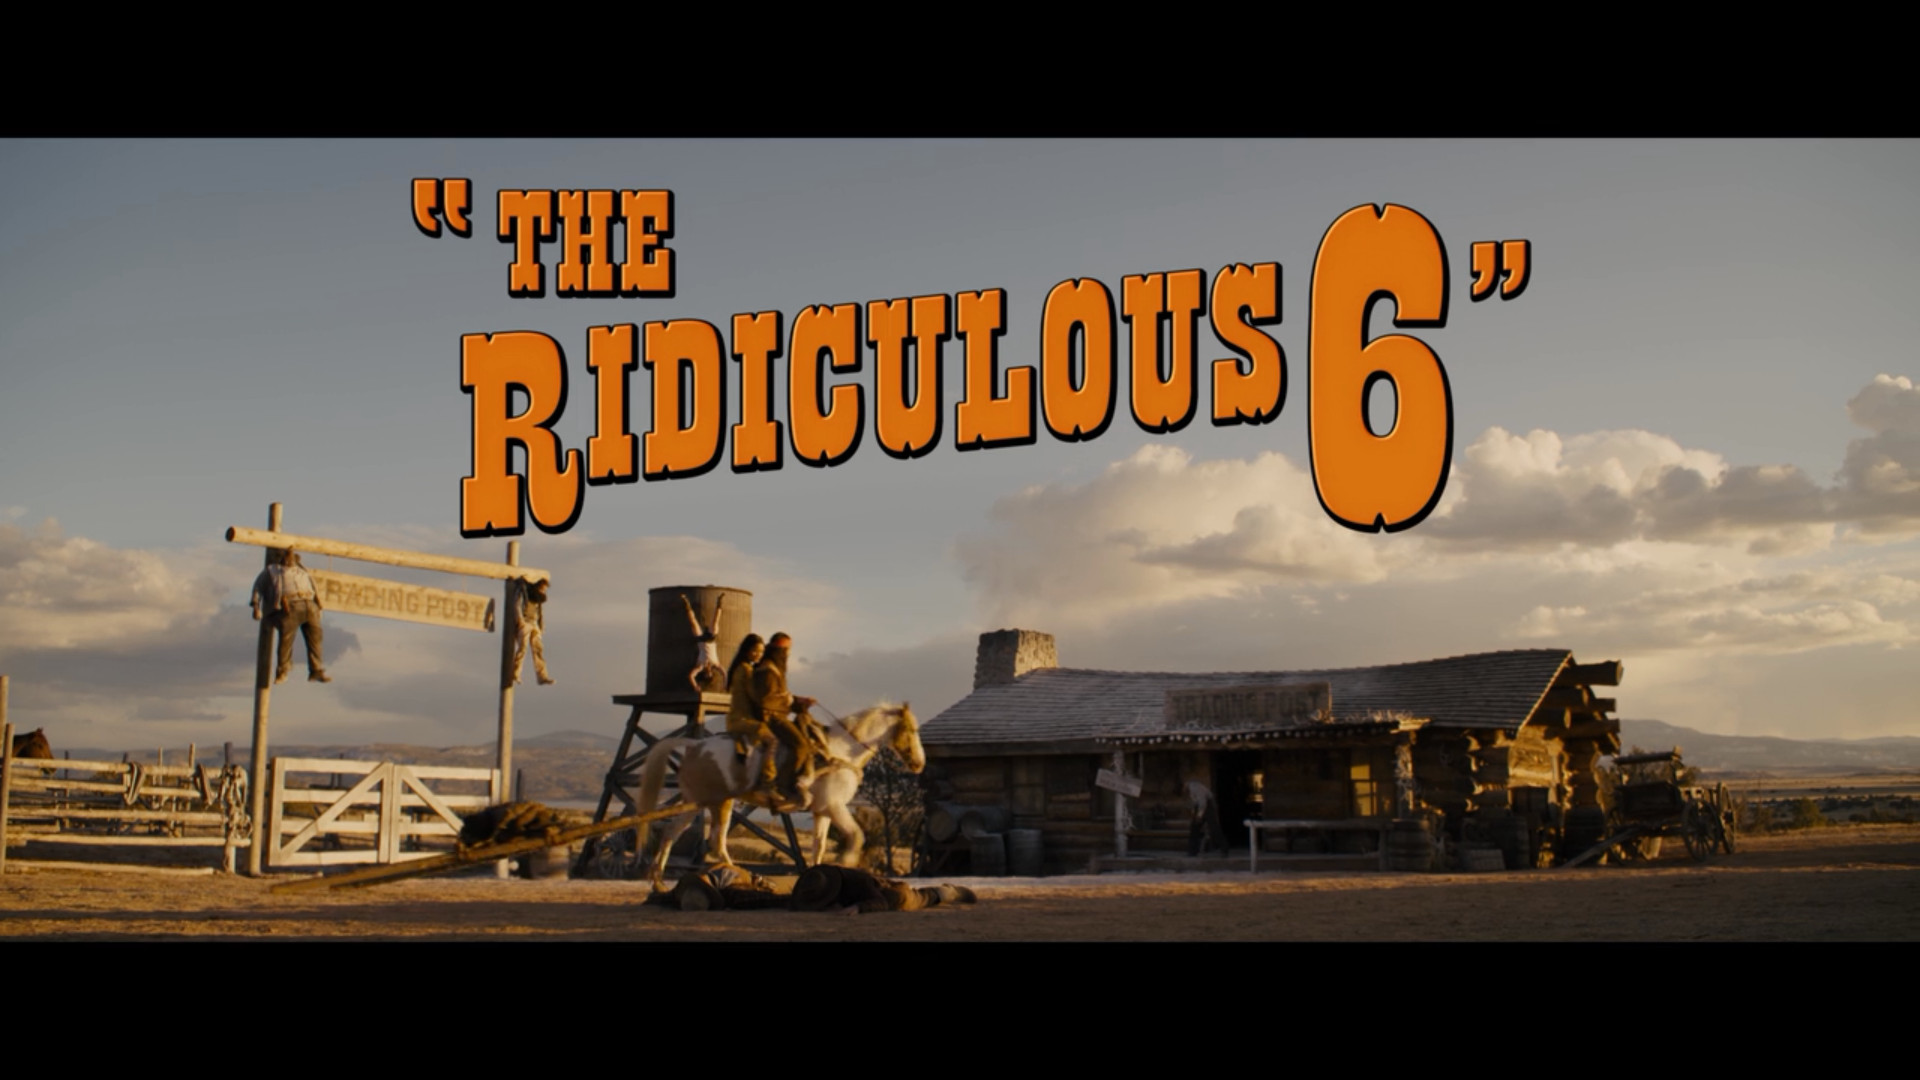 the ridiculous 6, netflix, review, movie, rant, adam sandler, rob schneider, taylor lautner, terry crews, luke wilson, jorge garcia, danny trejo, nick nolte, steve buscemi, harvey kietel, whitney cummings, david spade, blake shelton, jon lovitz, vanilla ice, norm macdonald